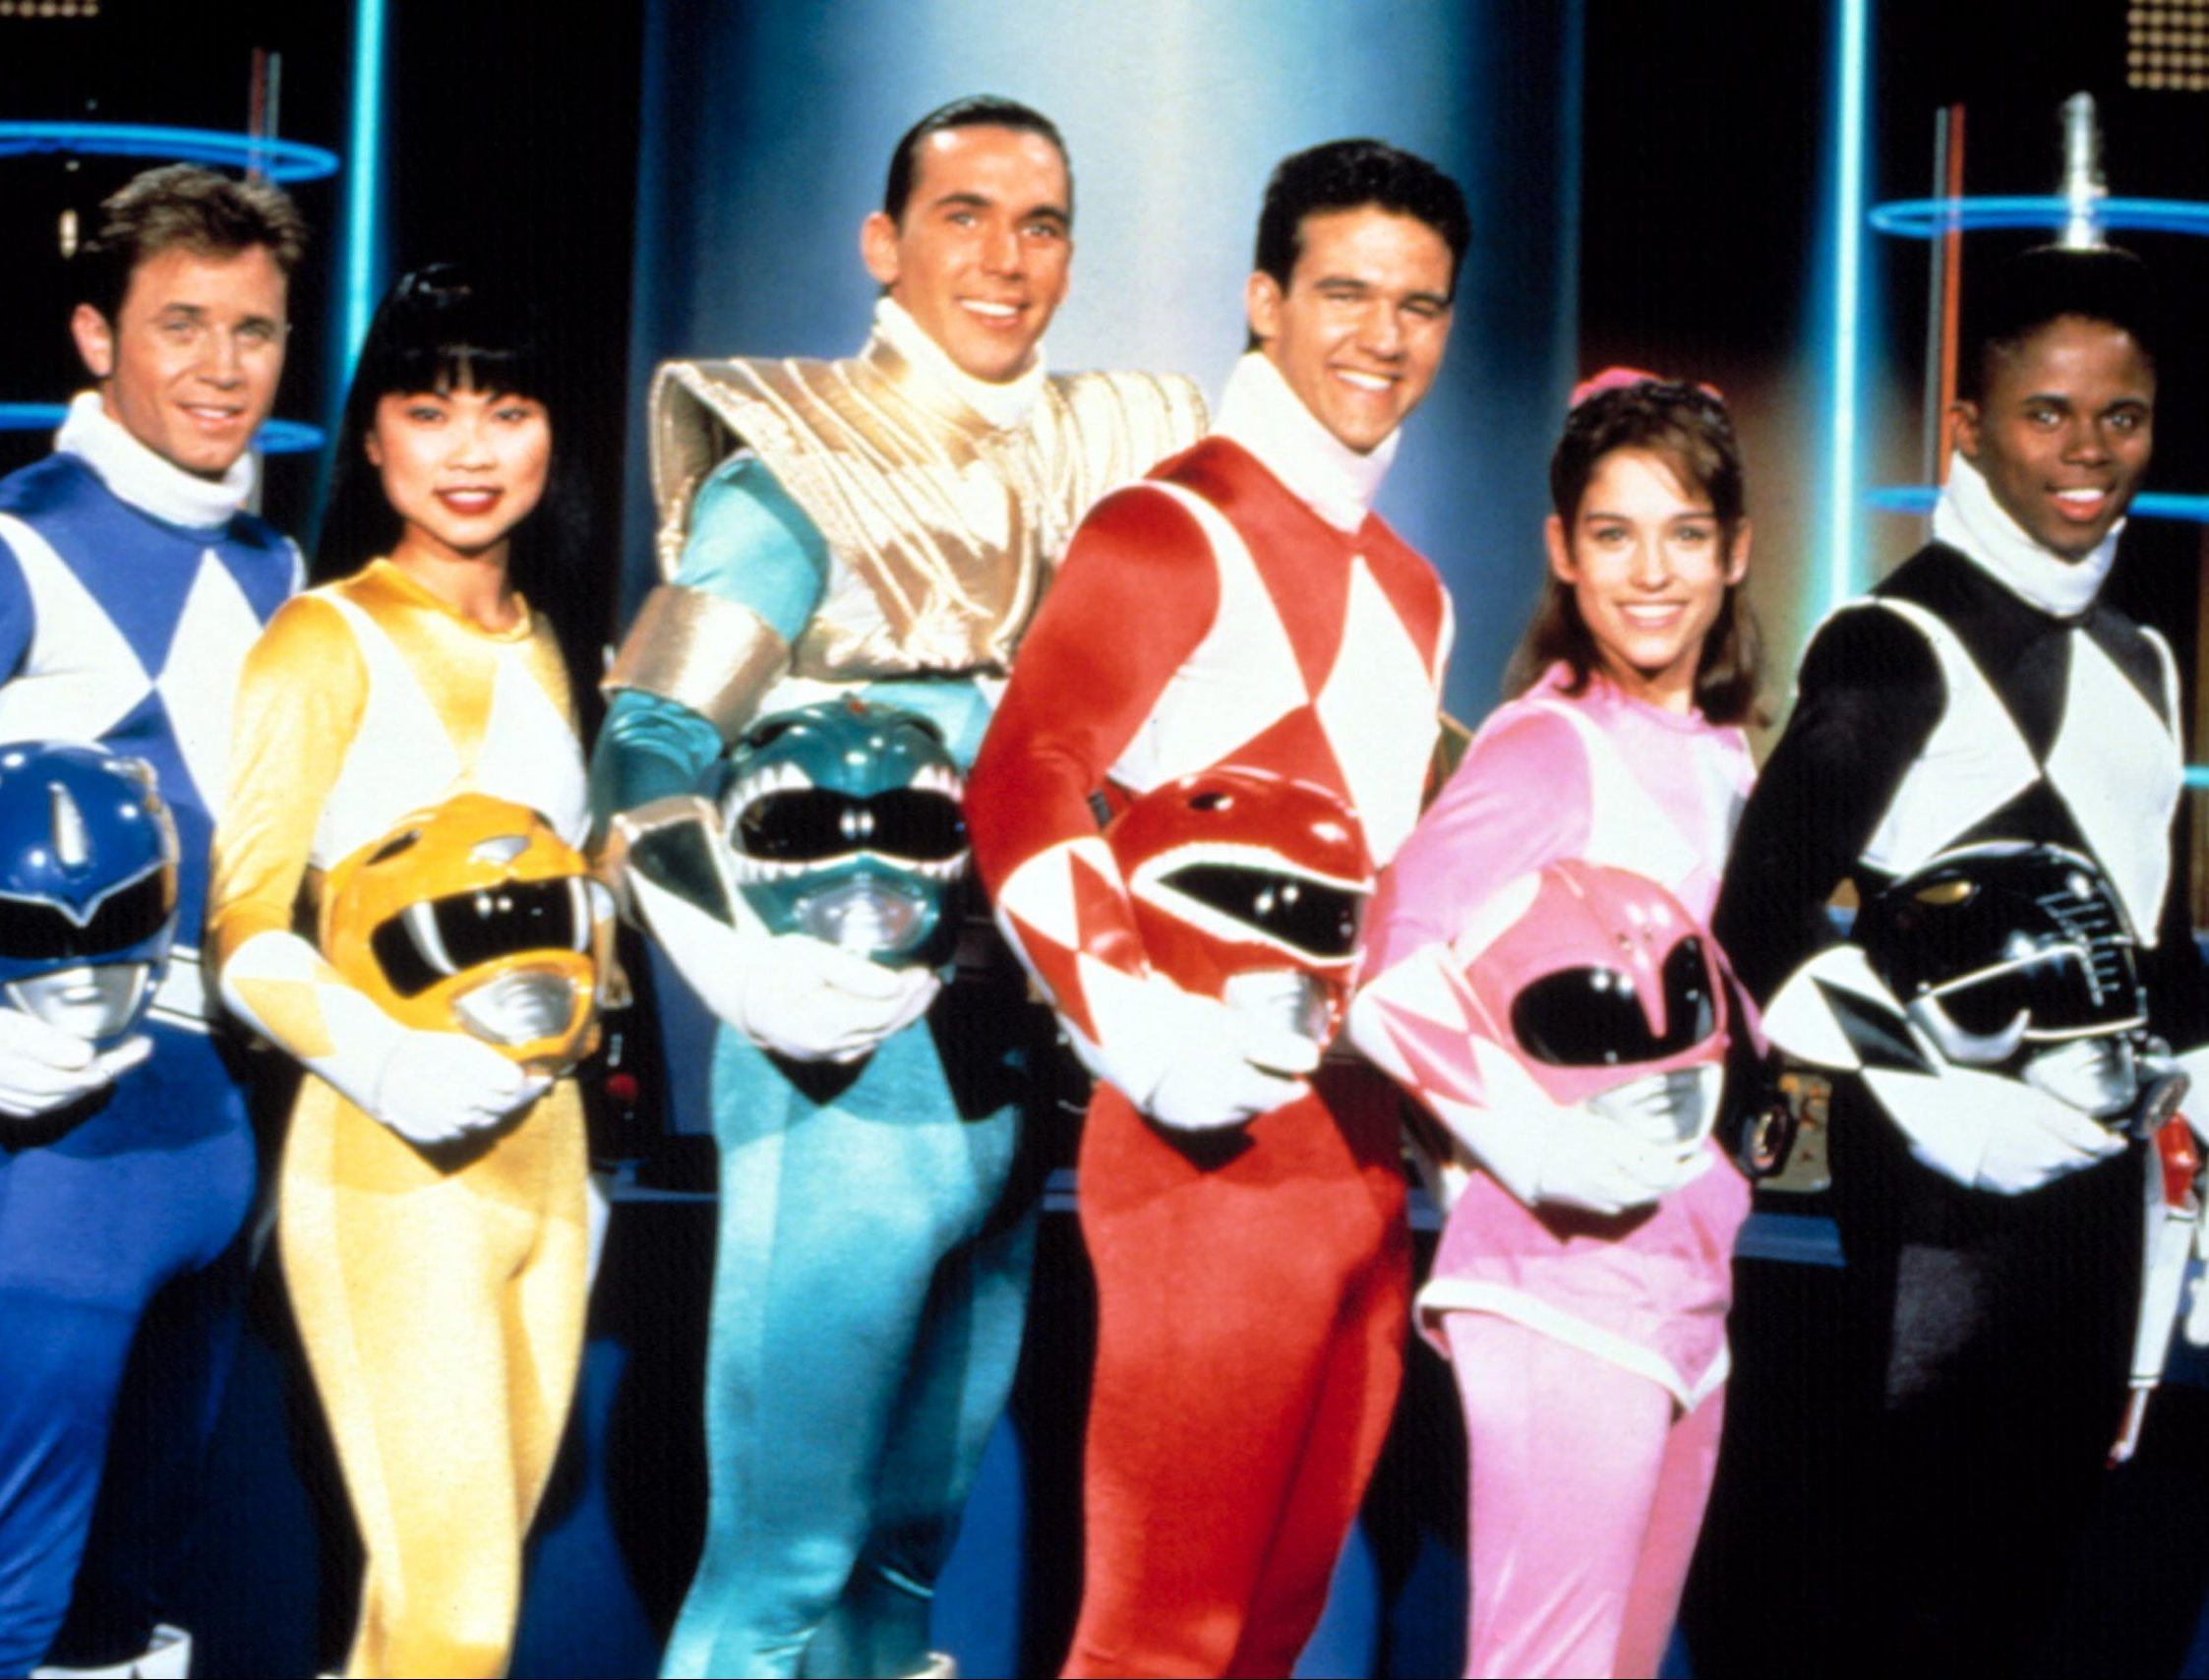 tsdmimo ec026 scaled e1605717043101 20 High-Kicking Facts About Mighty Morphin Power Rangers